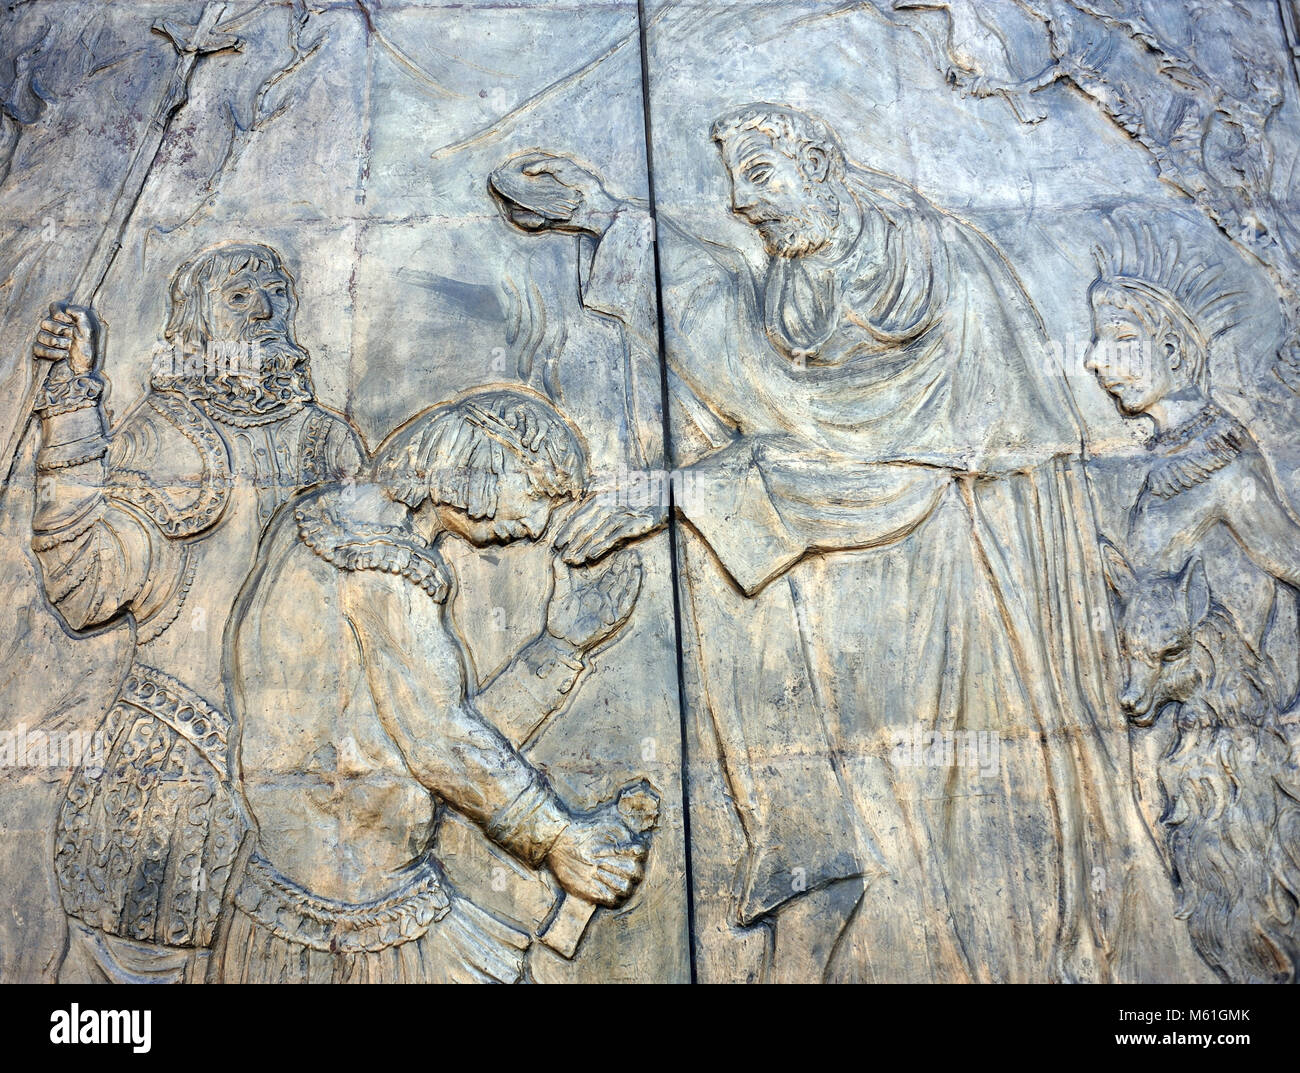 Details of the main south doors of the  Basílica del Voto Nacional showing the baptism of native people by - Stock Image